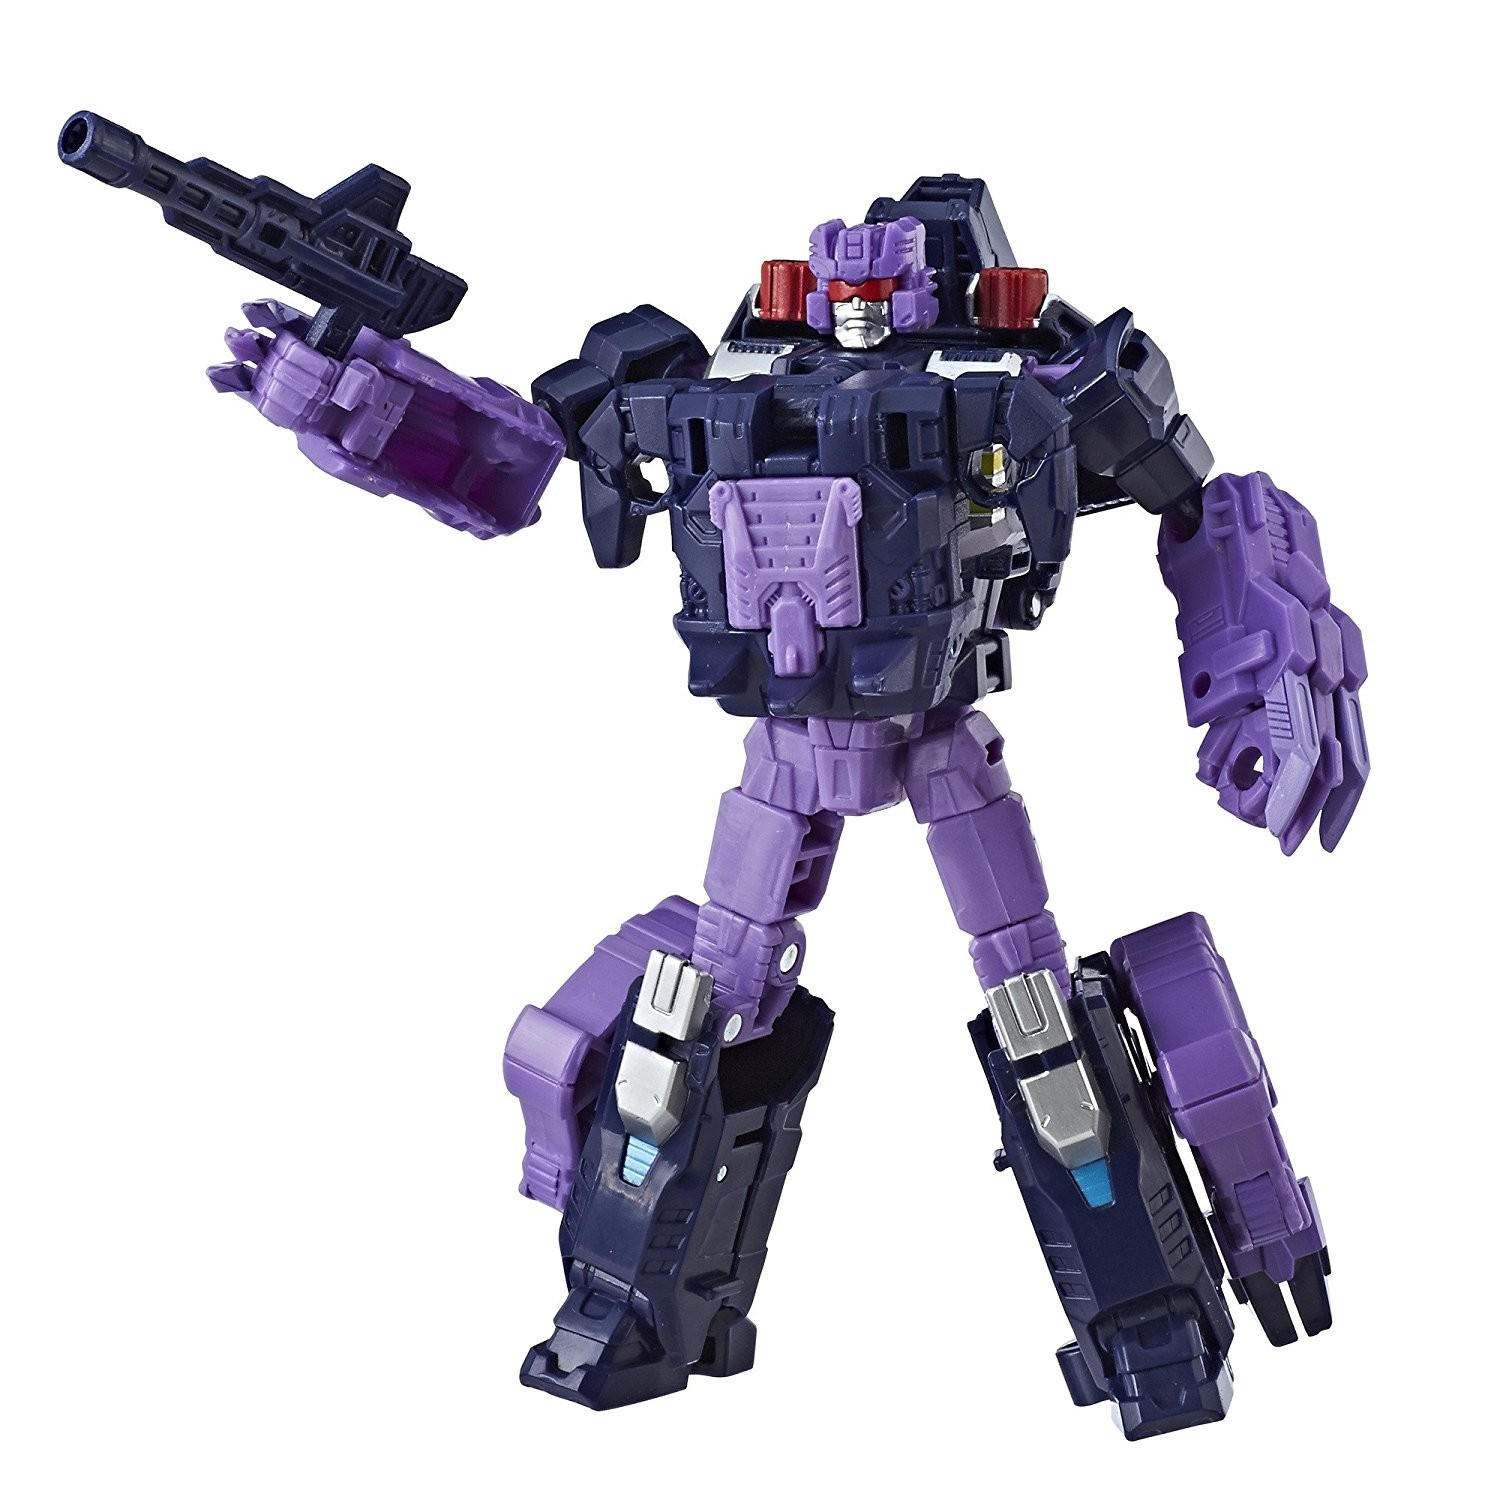 Transformers News: Transformers Power of the Primes Wave 3 Terrorcons Images